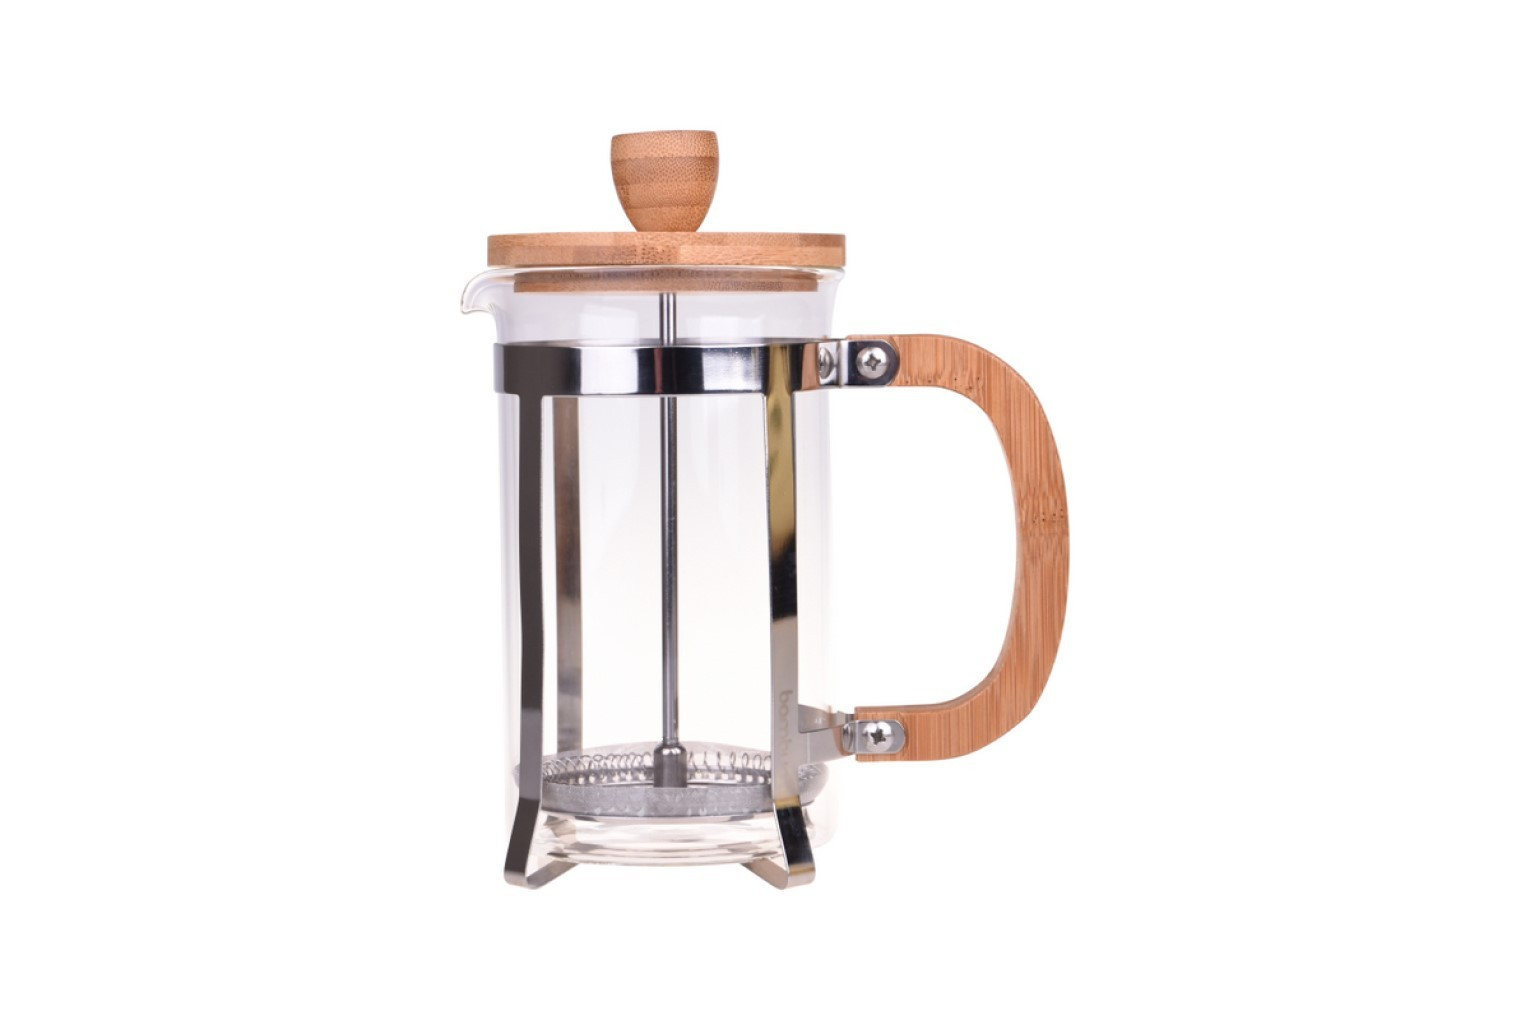 Devin's Bamboo French Press Coffee Plunger - Boho Design 350 ml, 600 ml and 800